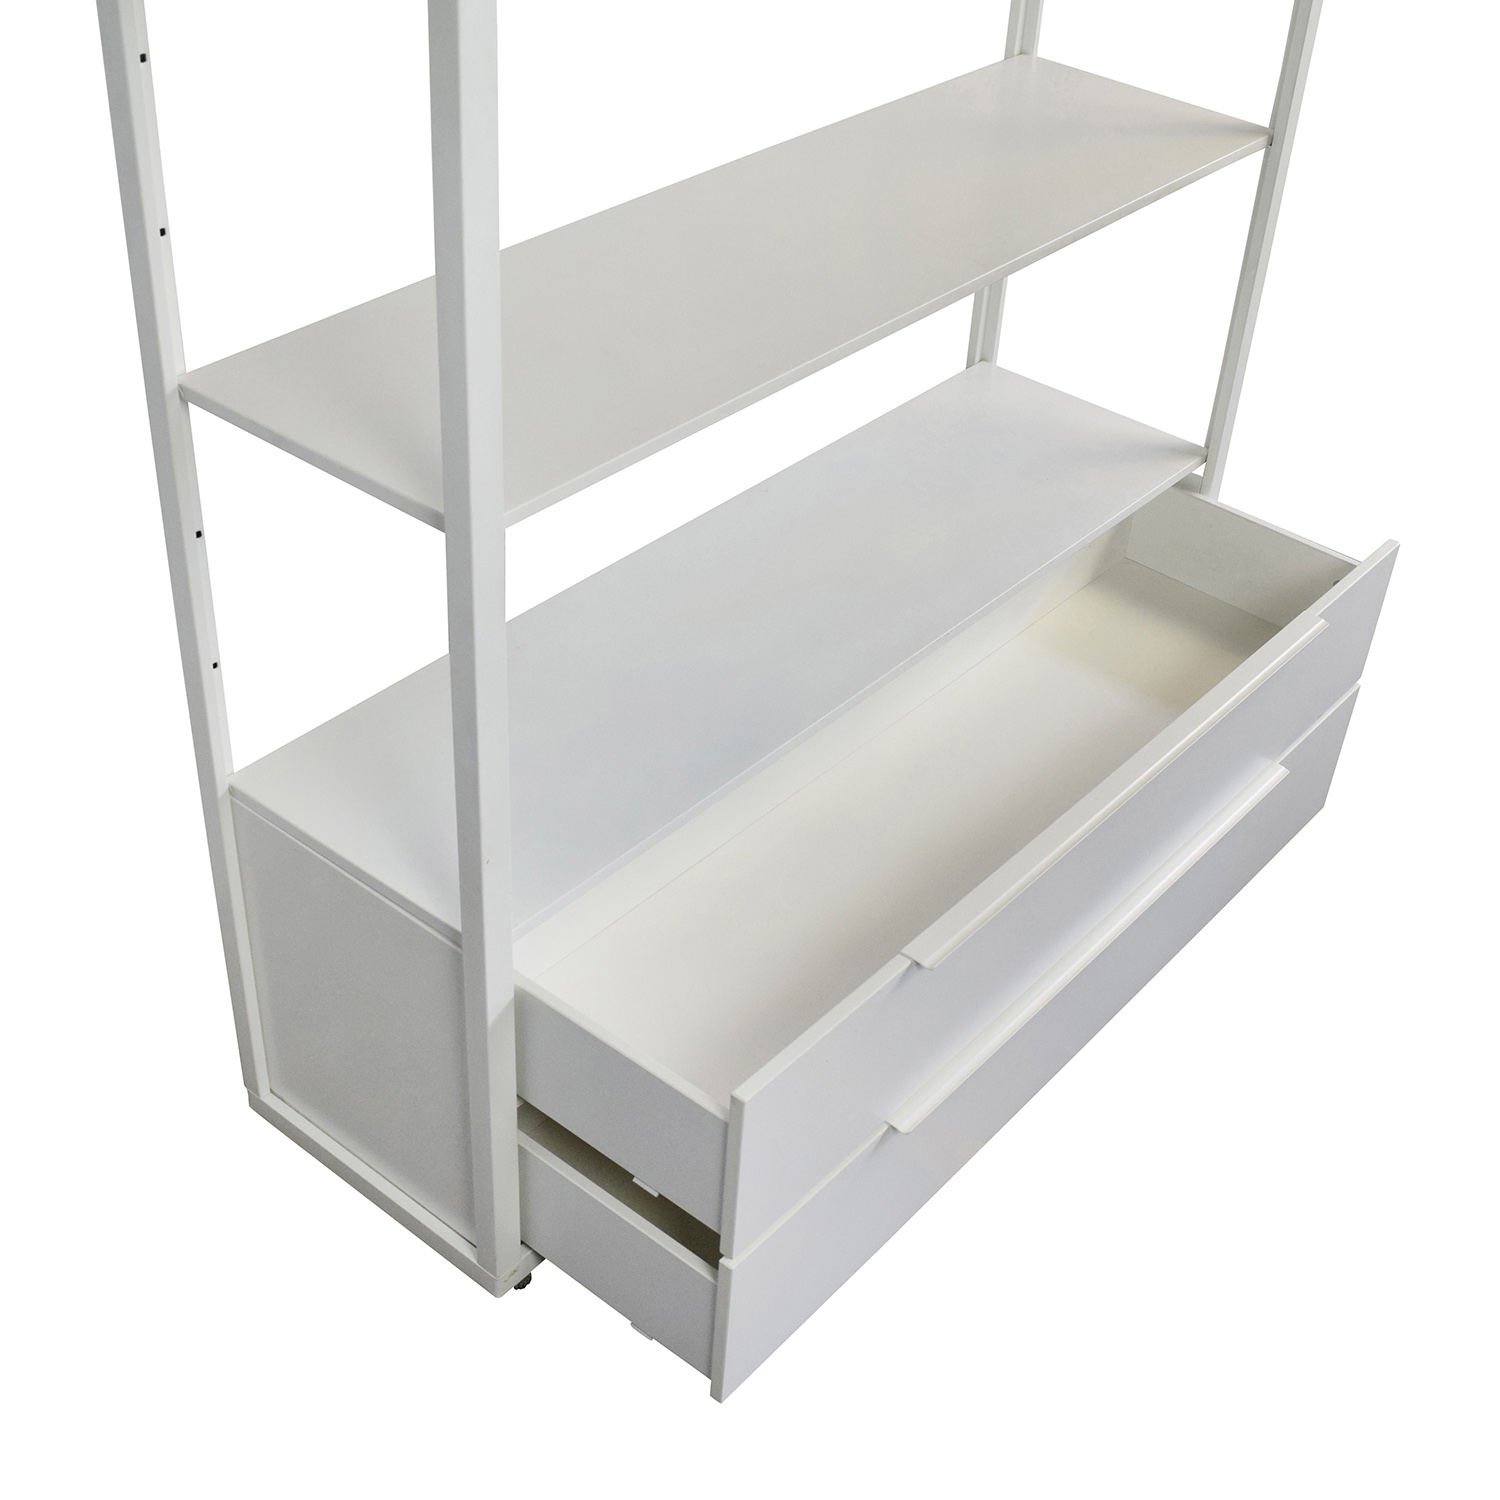 63 Off Ikea Ikea White Shelving Unit With Drawers Storage